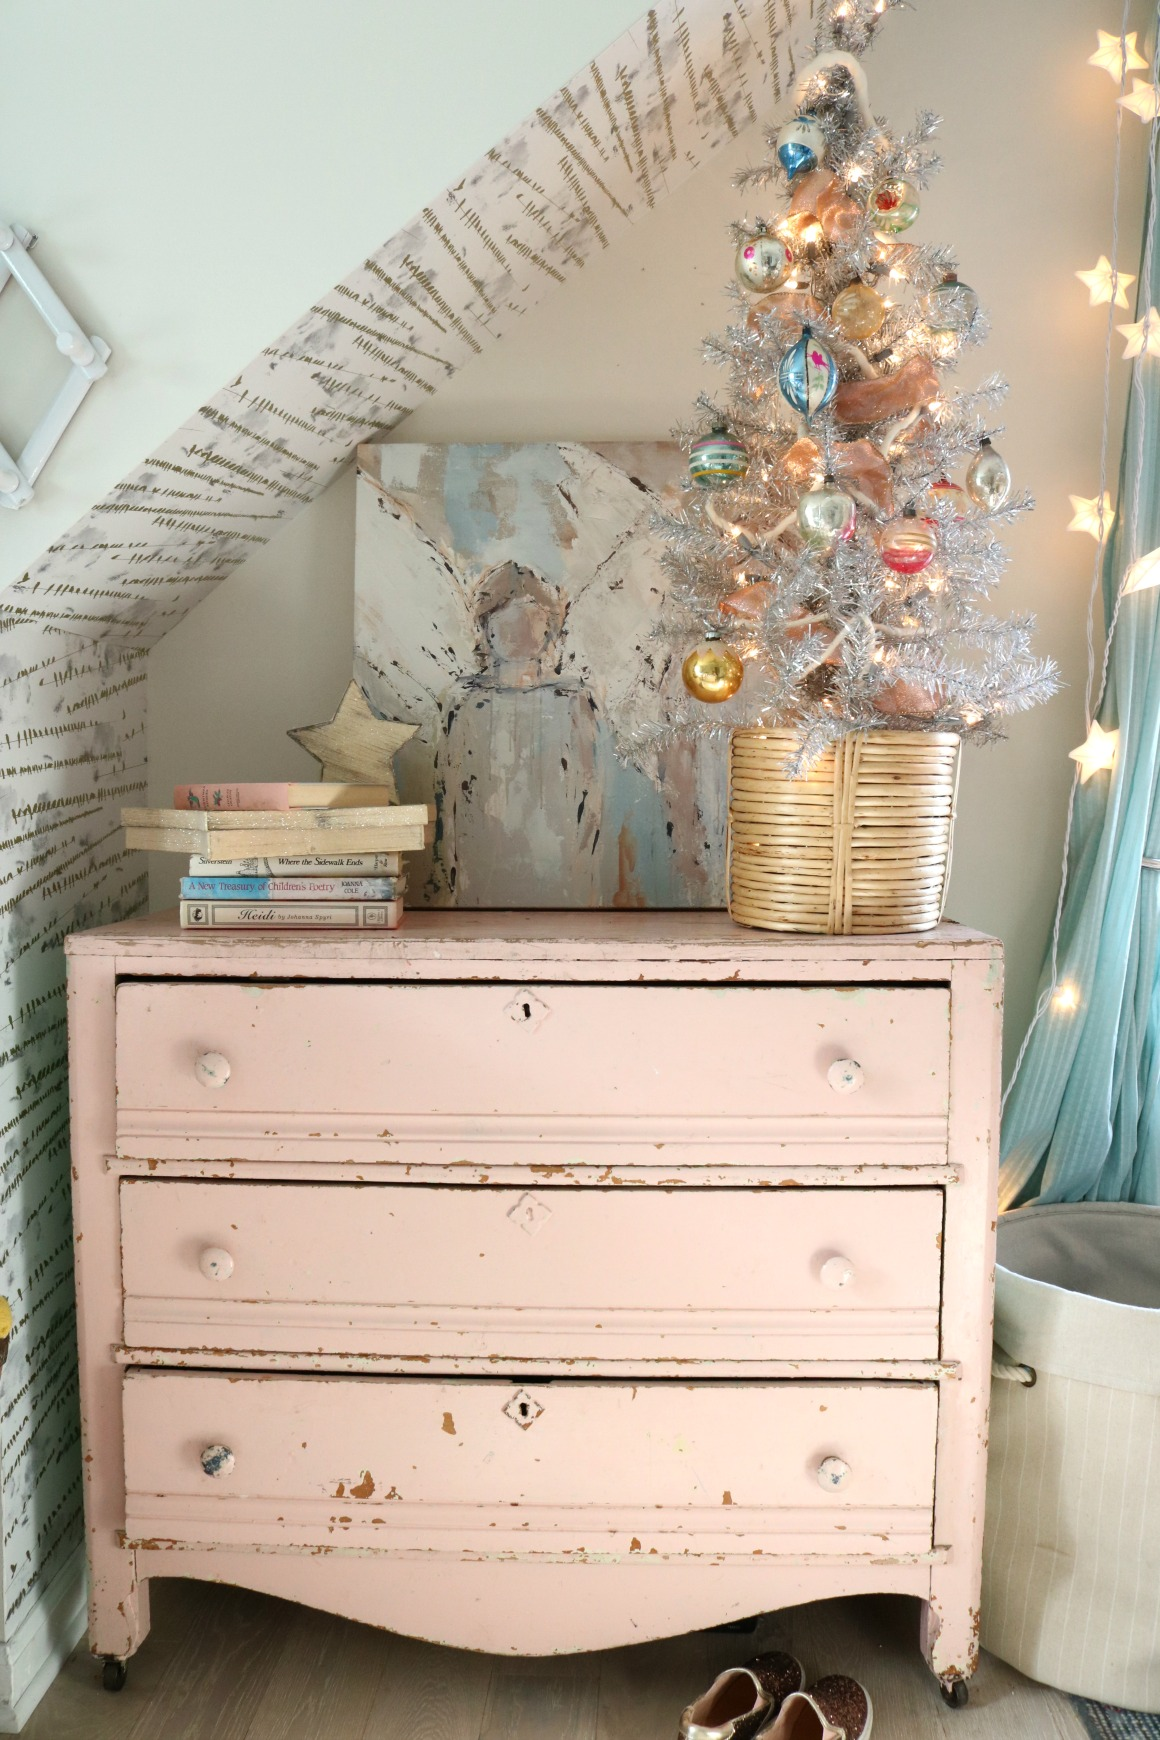 Christmas Decor in a Small Cape- Girls Shared Bedroom 078